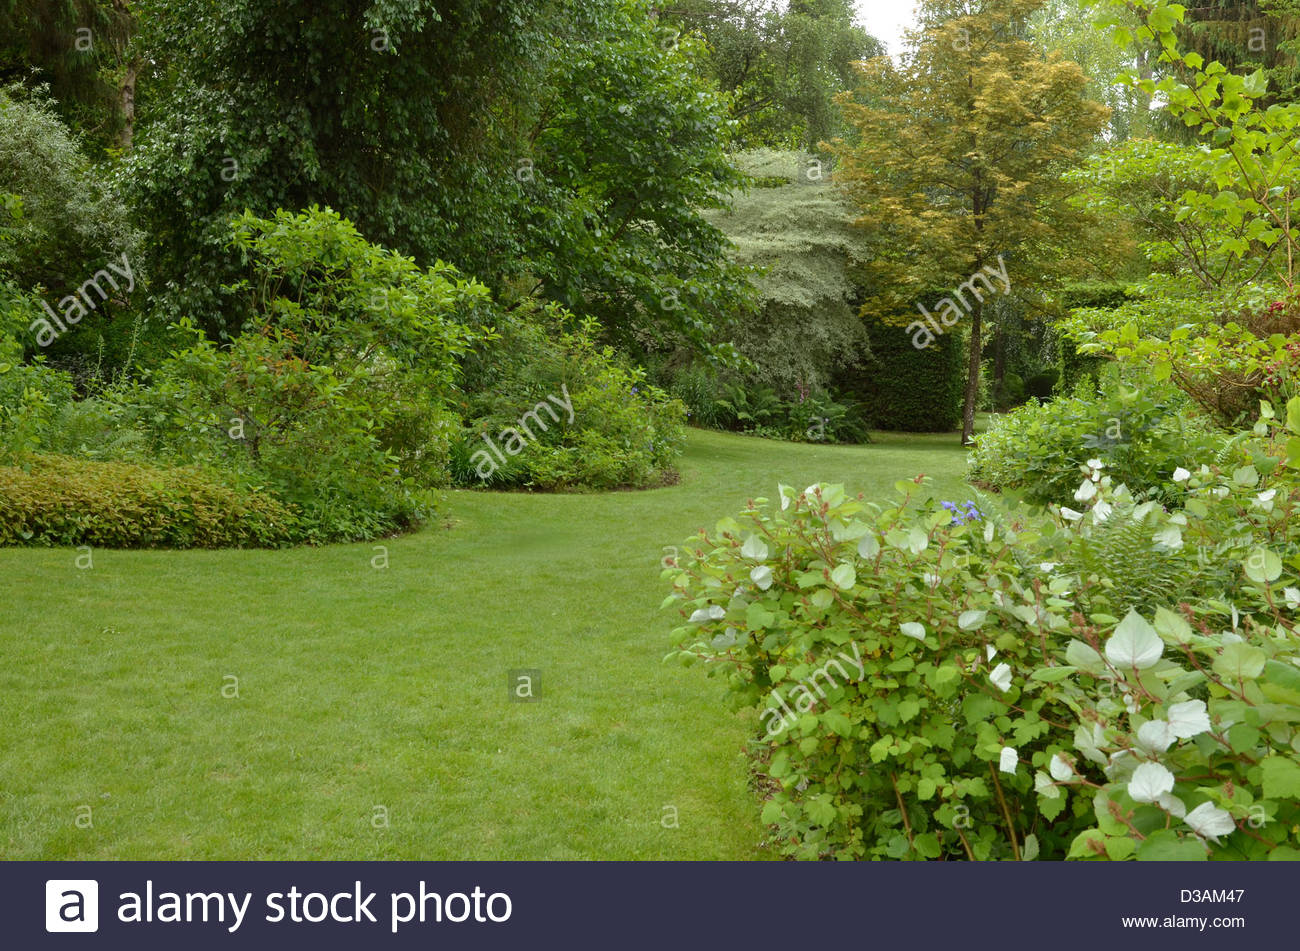 lawn, remarkable Garden, Séricourt, France, 62, Pas-de-Calais, France - Stock Image